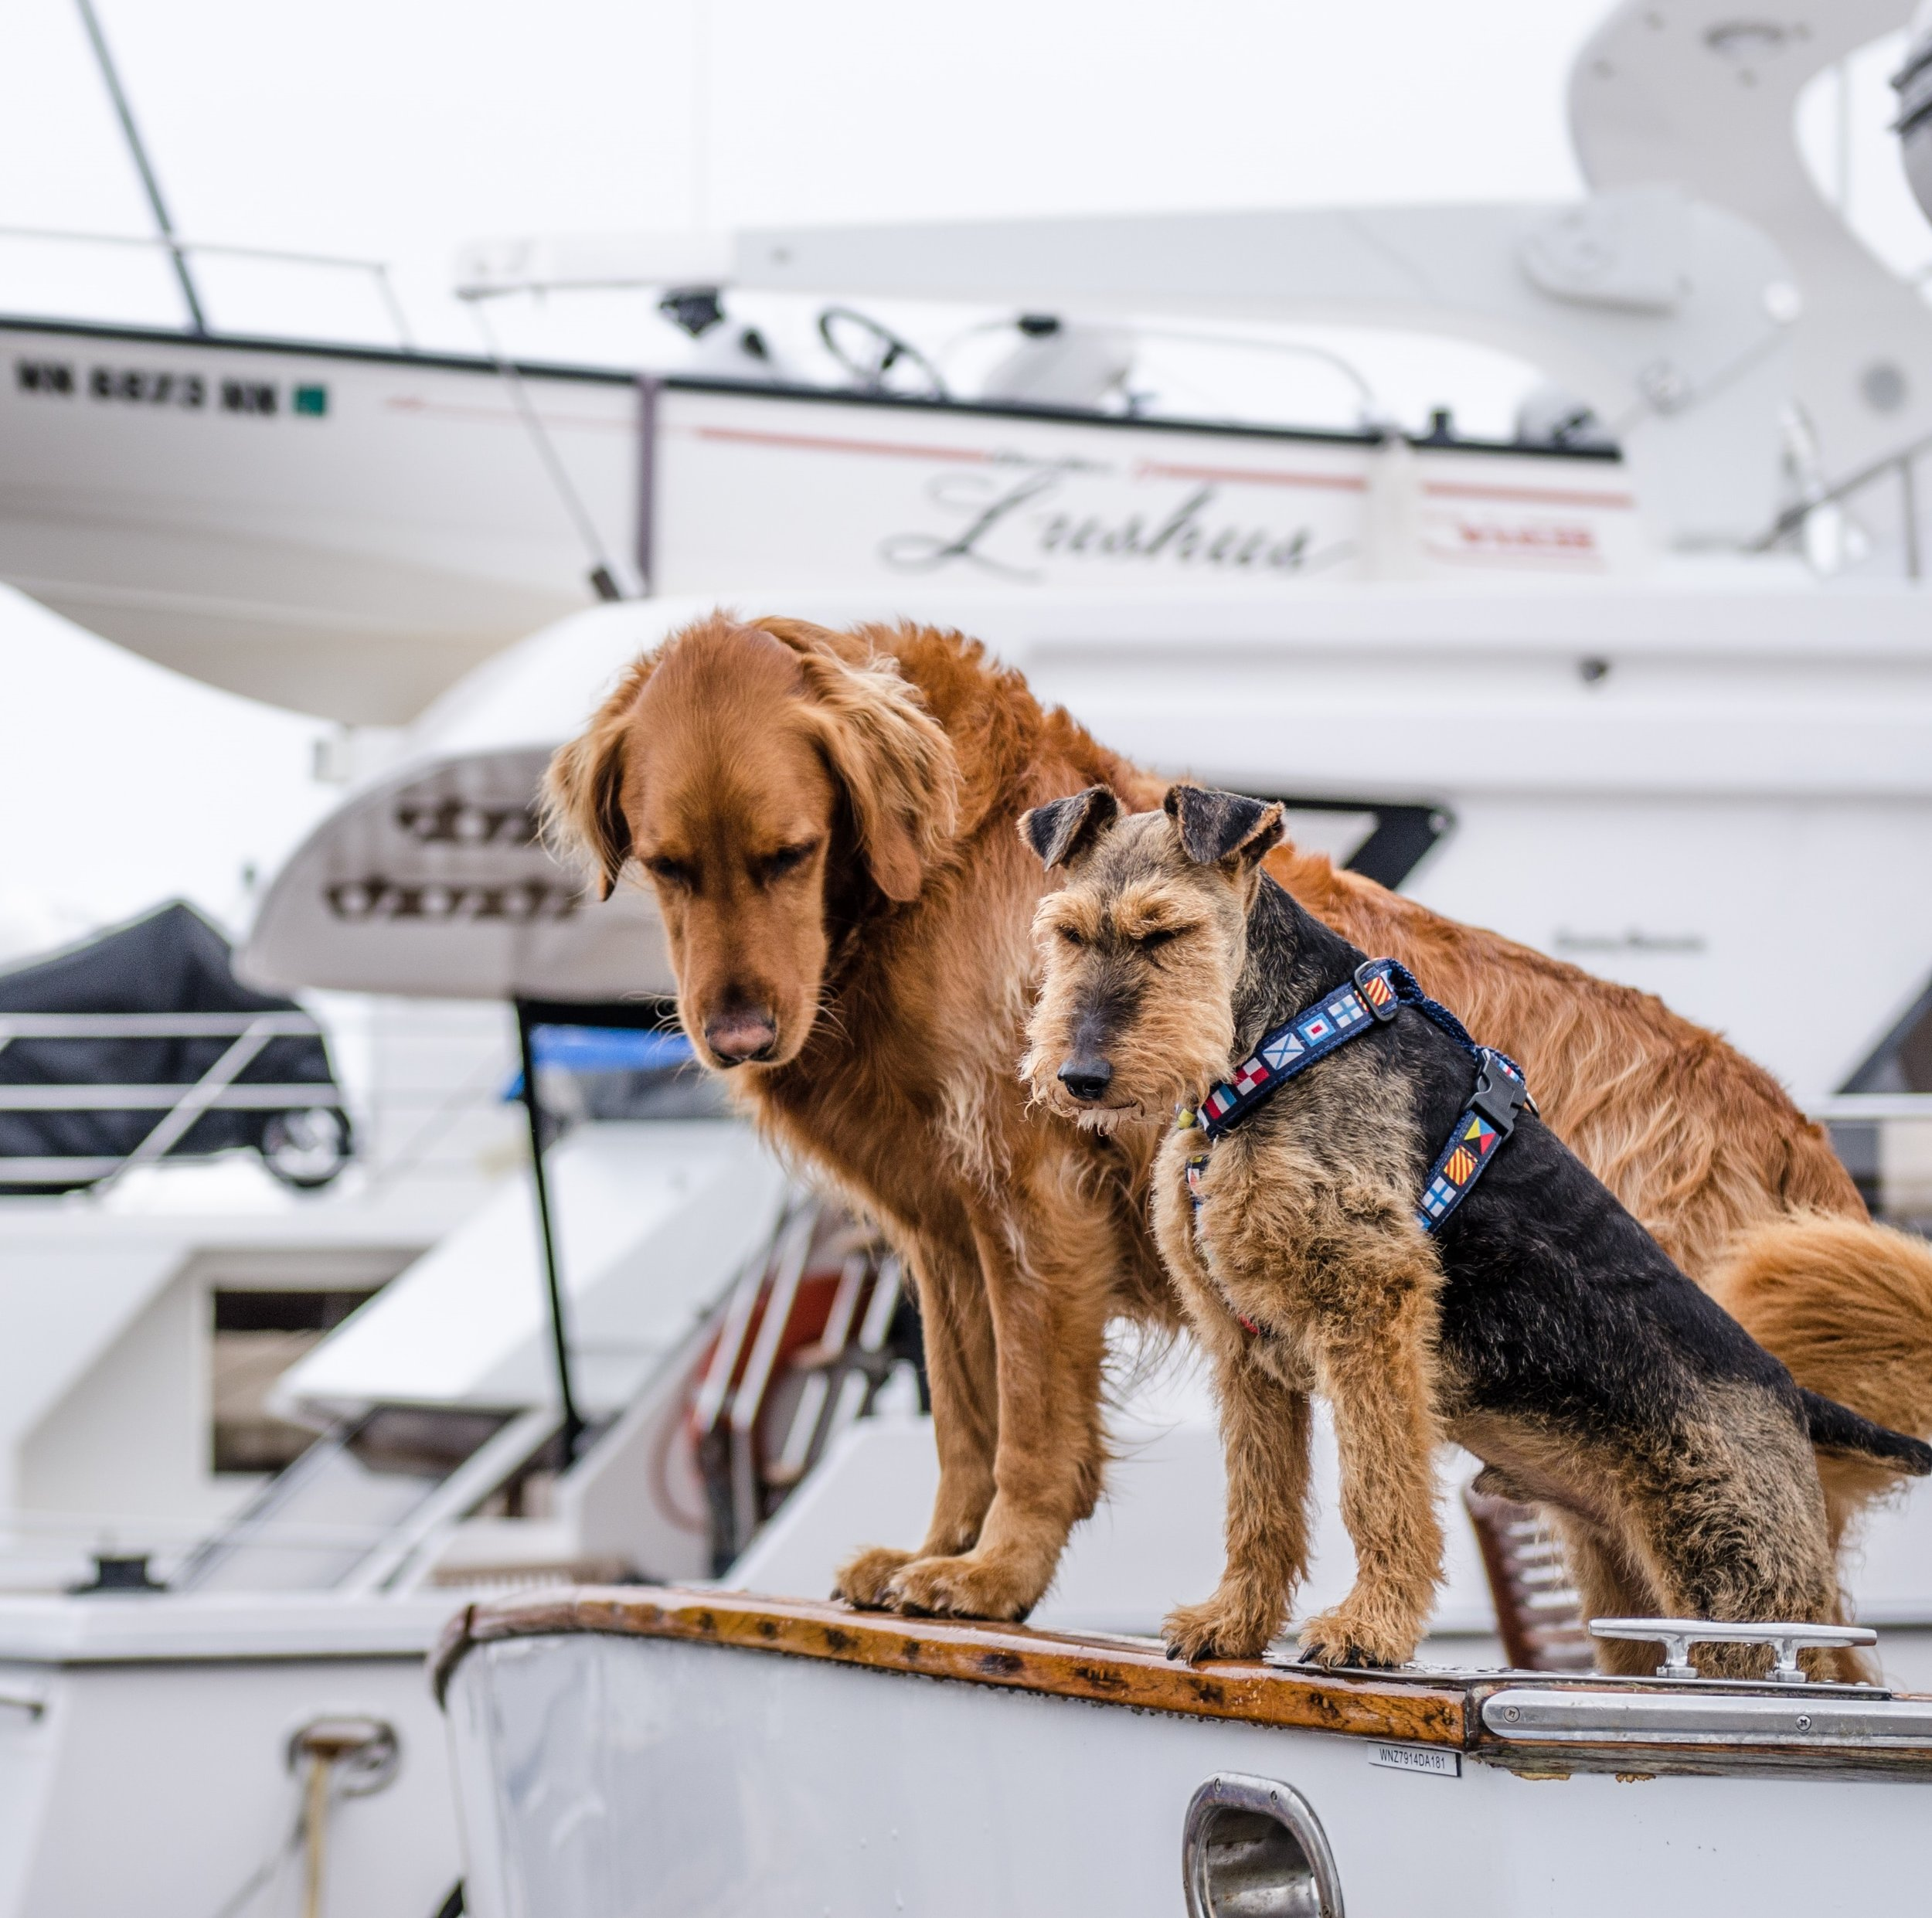 amelia island dog friendly activities charter